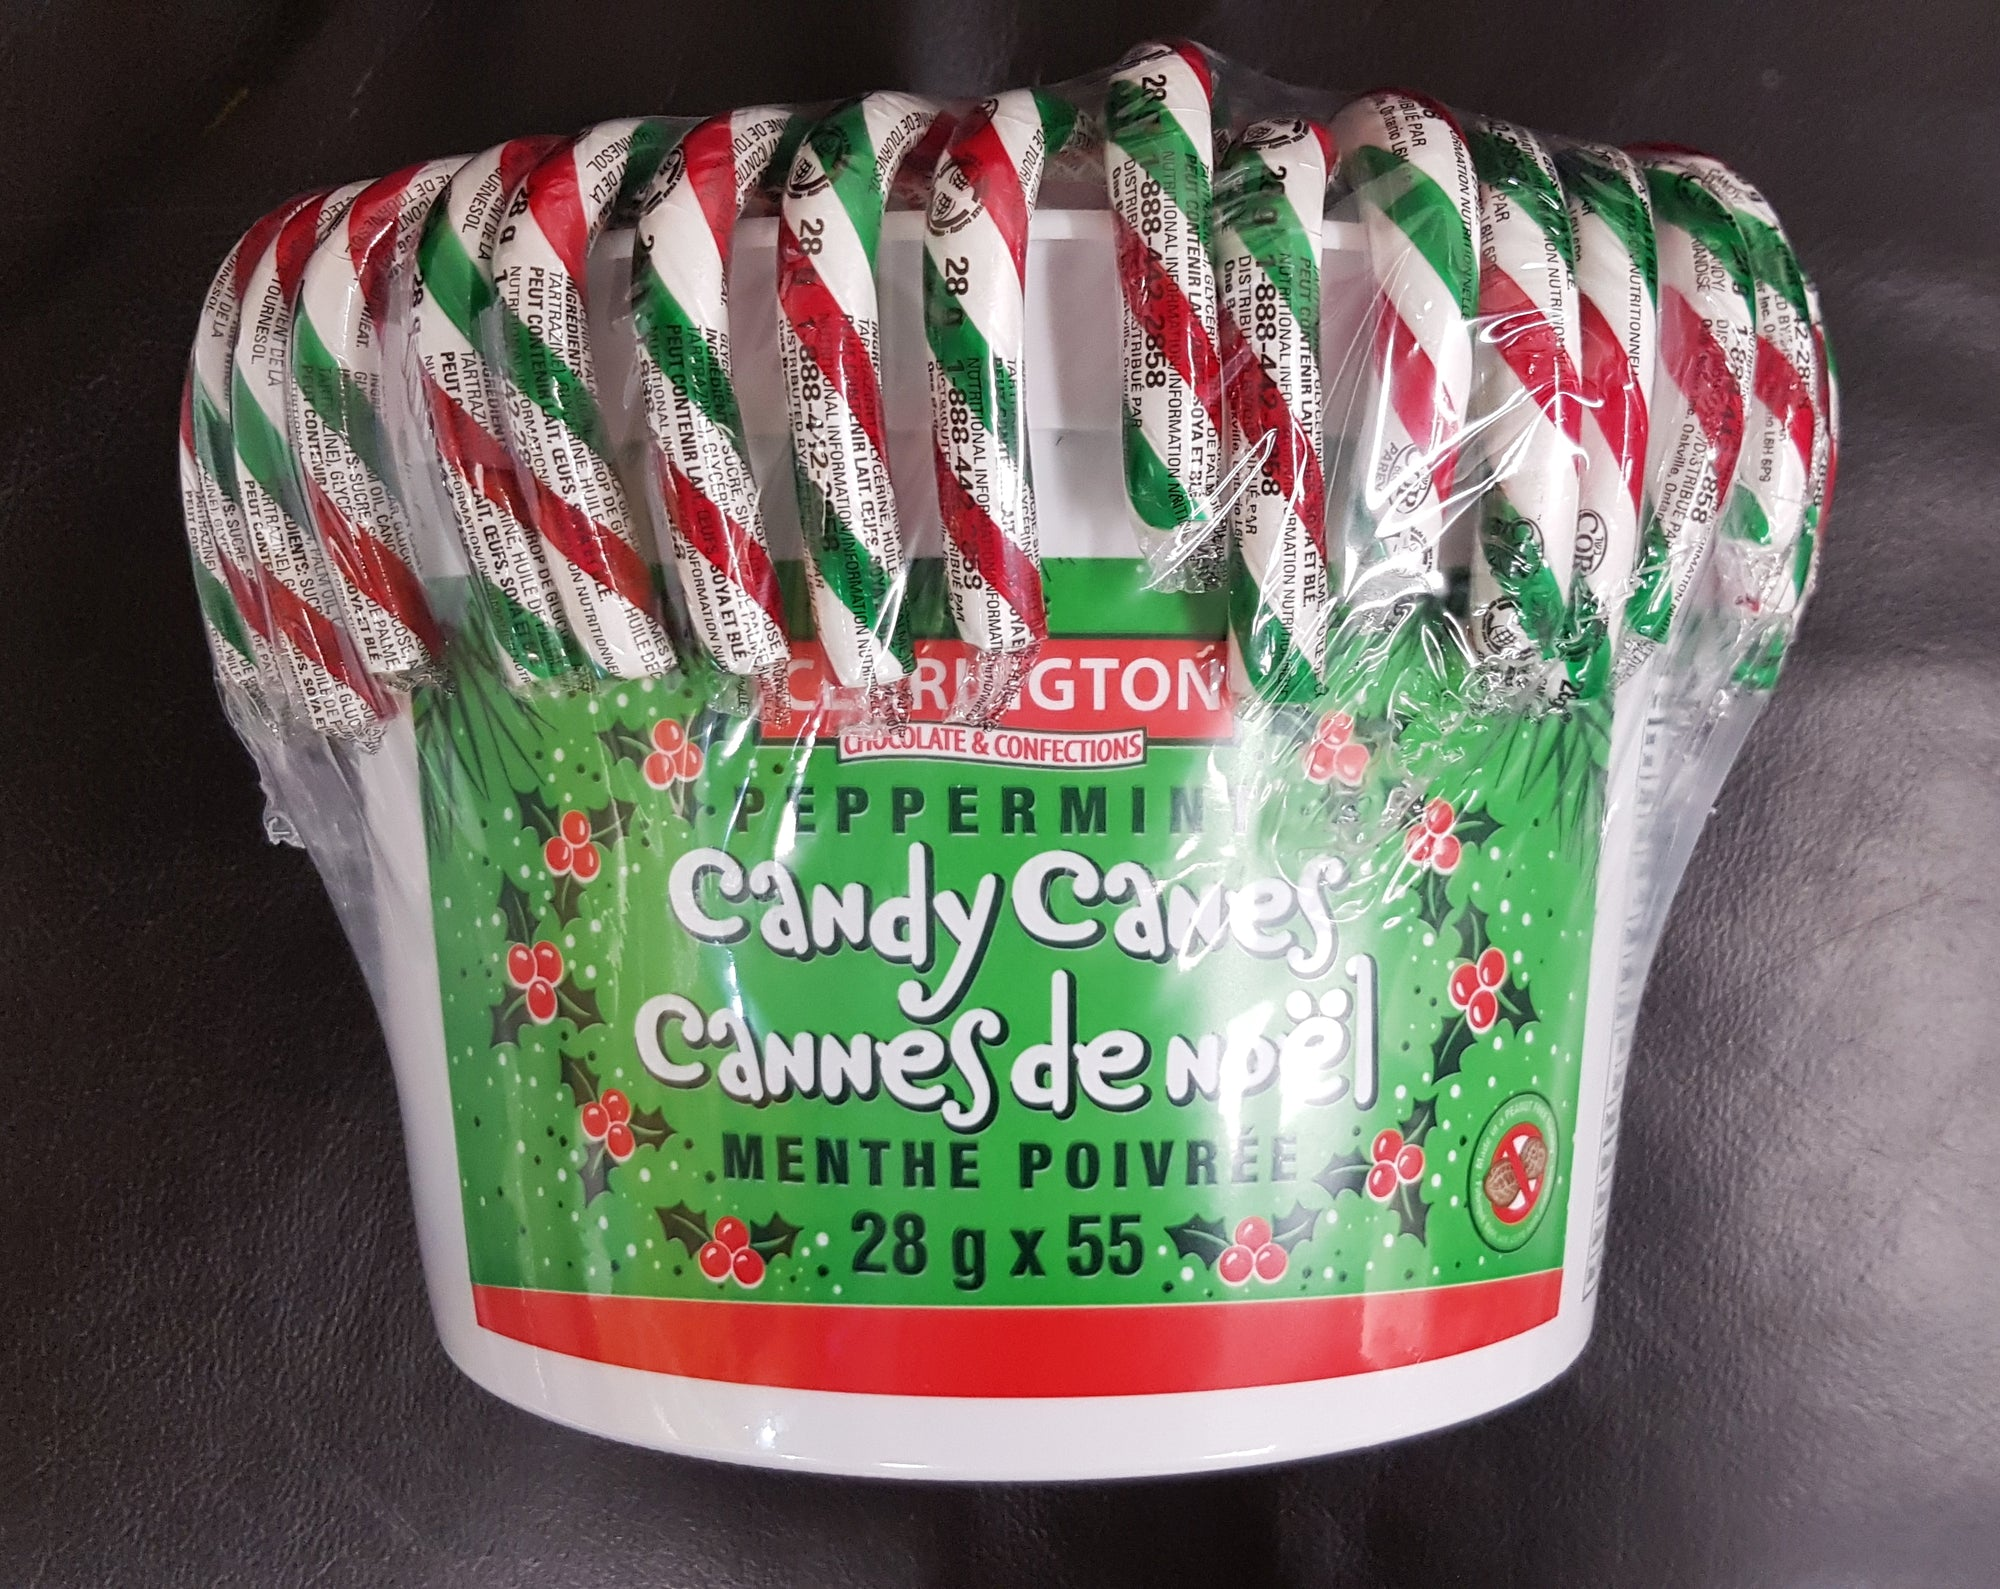 Clarington Peppermint Candy Canes 28g x 55 (CURBSIDE PICKUP ONLY)